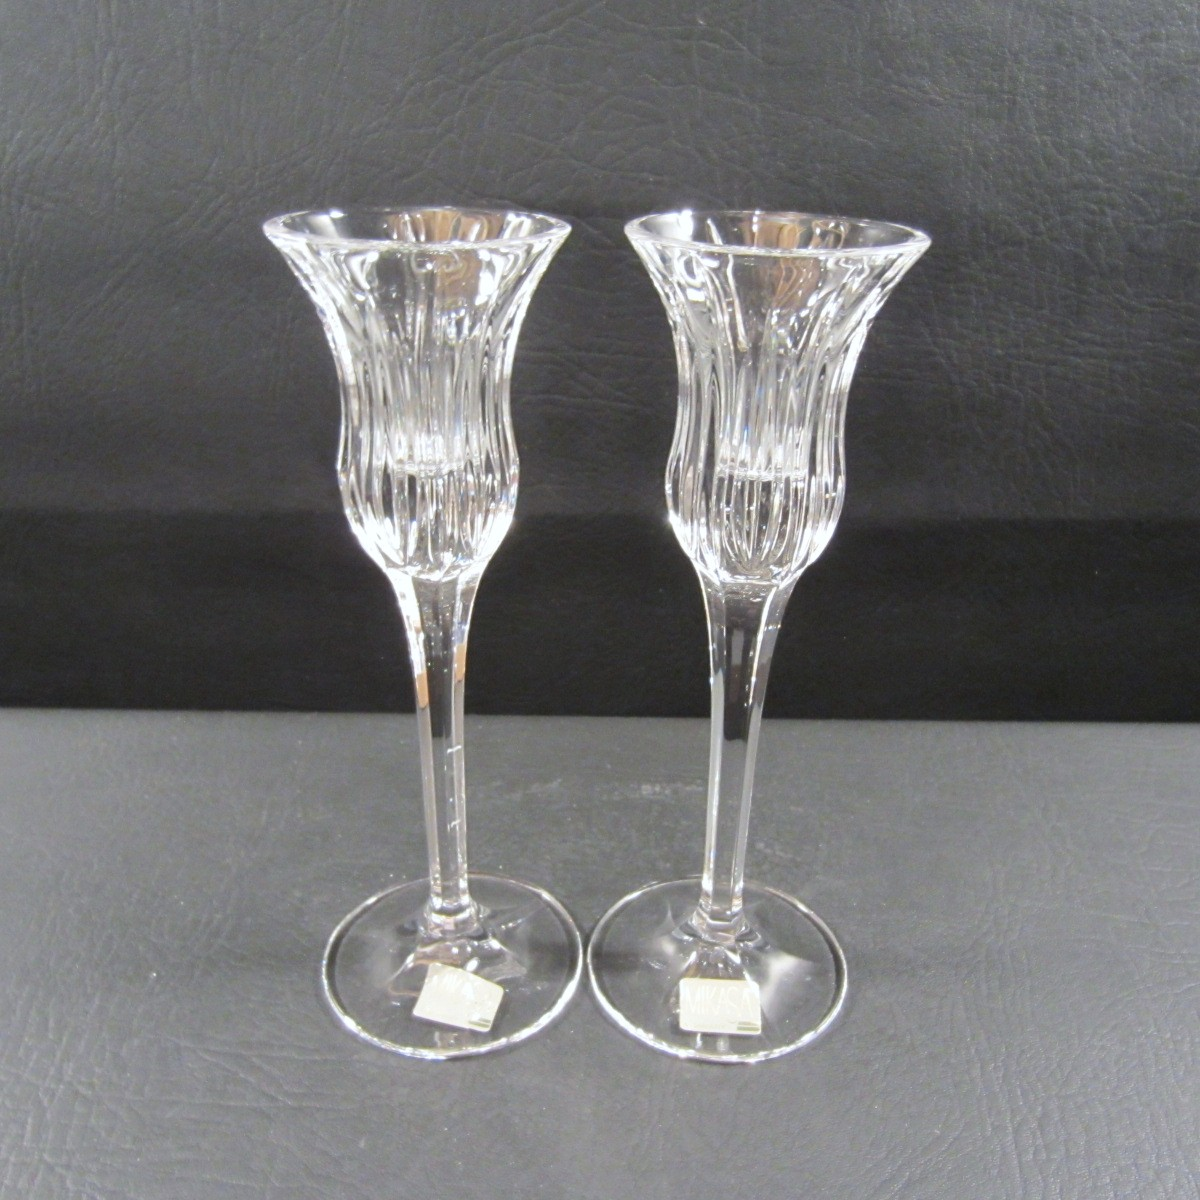 Mikasa Crystal 8 Inch Cut Stemmed Cordial Glasses